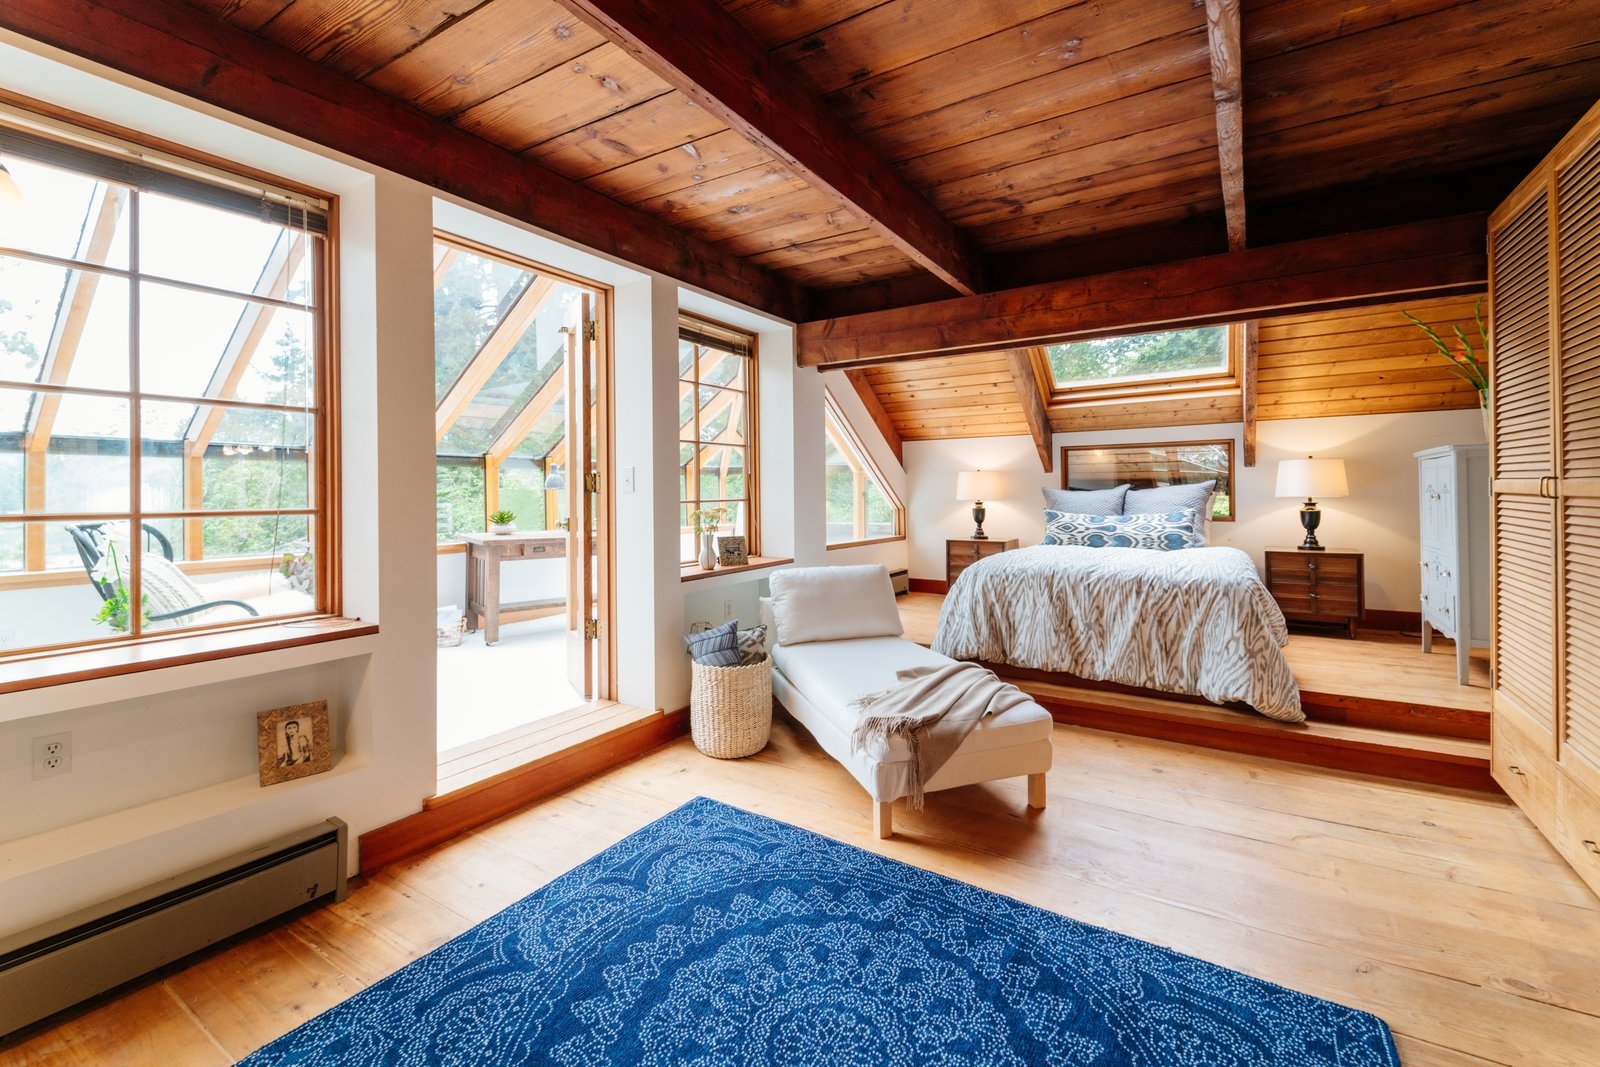 Repurposed Ship Materials and 100-Year-Old Beams Make Up This Tree House-Like Home - Photo 11 of 19